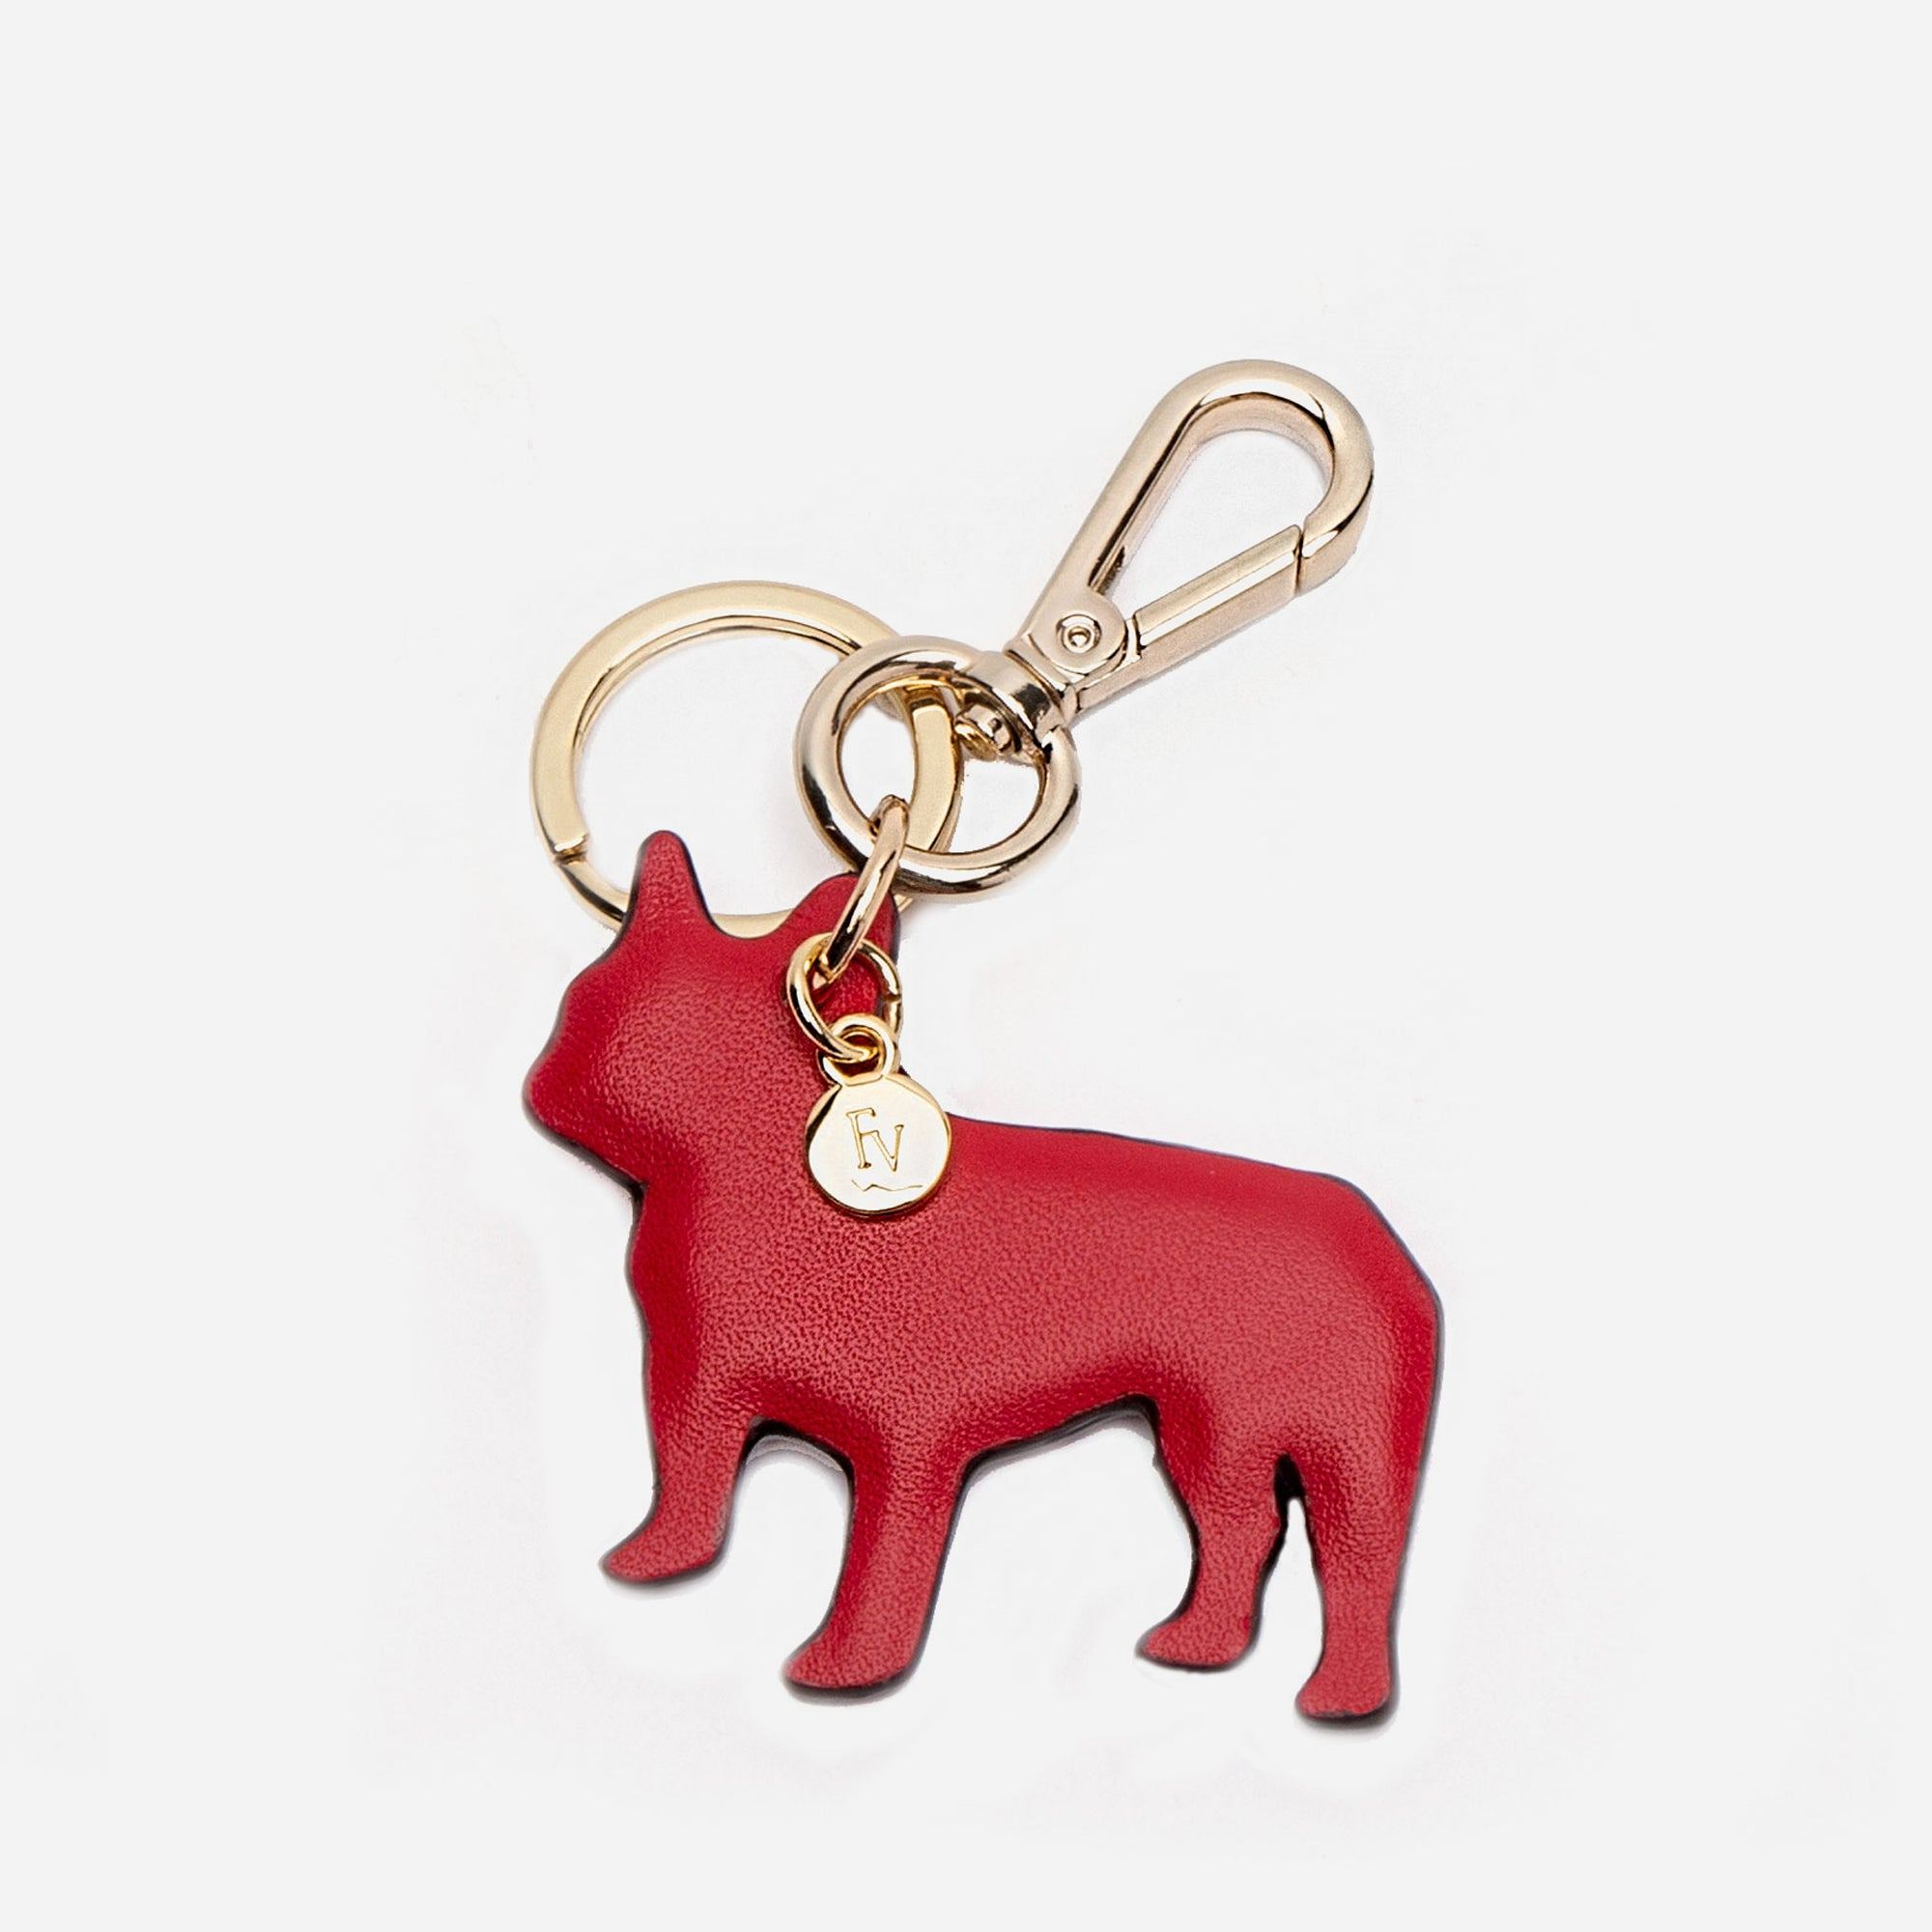 French Bulldog Keychain Red